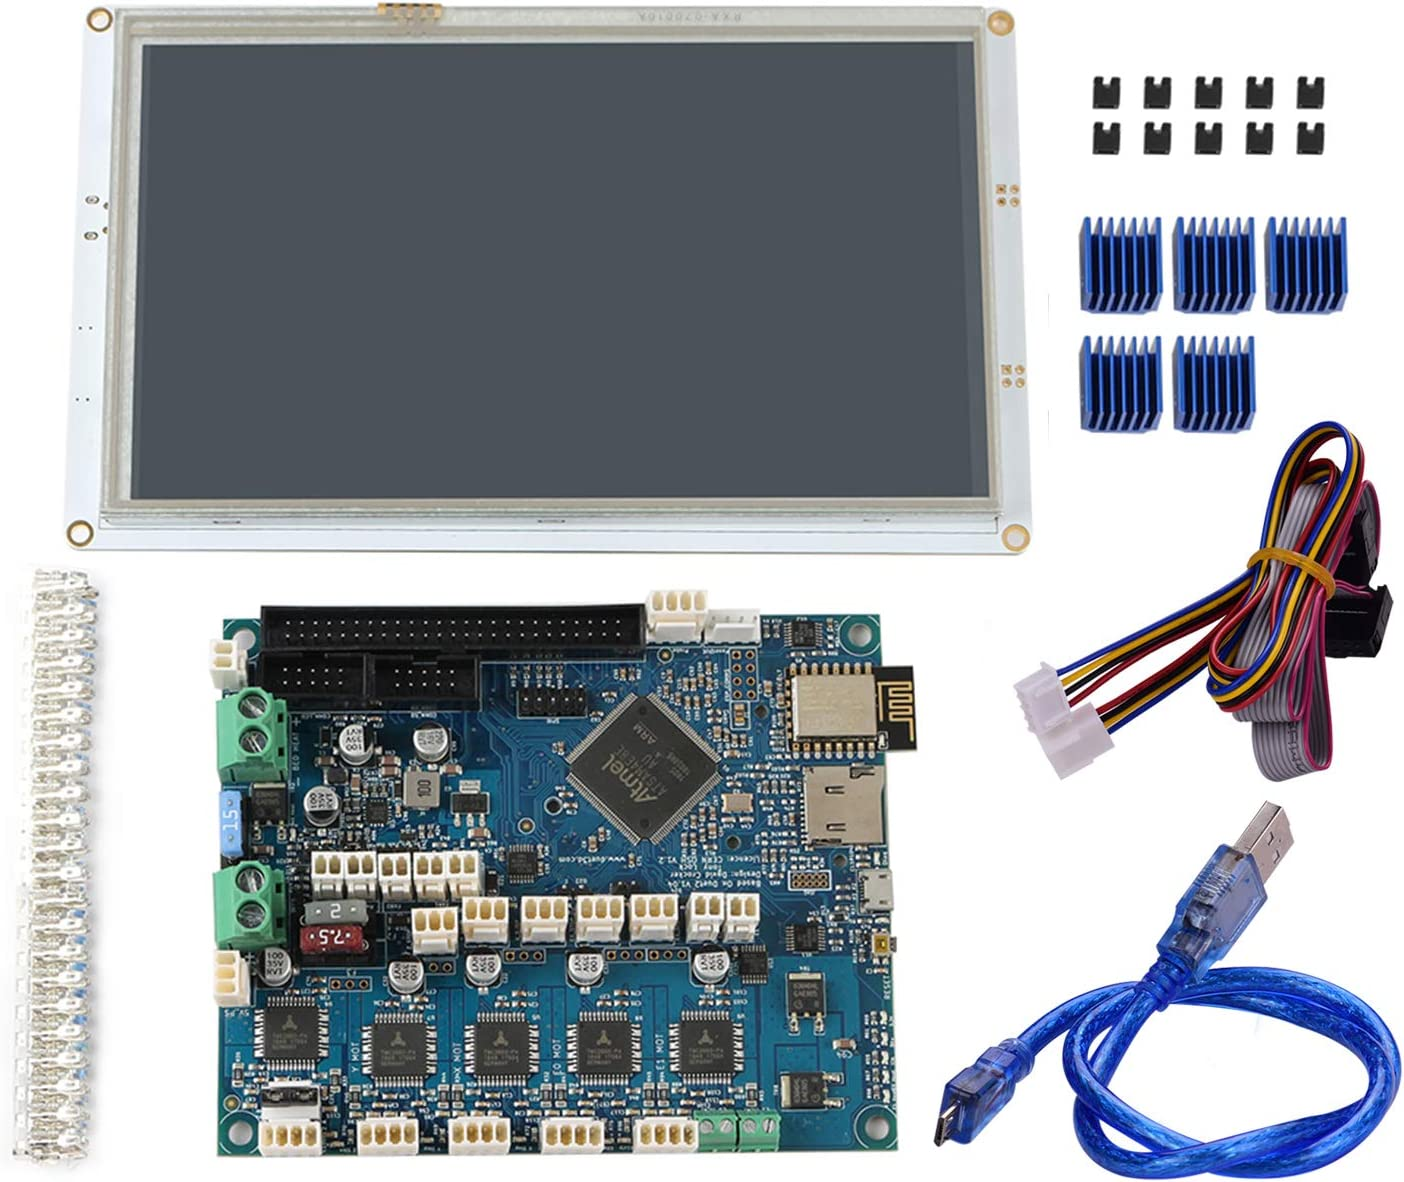 Entweg 3D Printer Parts Clone Duet 2 WiFi V1.04 Advanced 32 Bit Electronics Motherboard with 7 Inch Paneldue 7I Integrated Paneldue Colour Touchscreen Controller for Blv MGN Cube